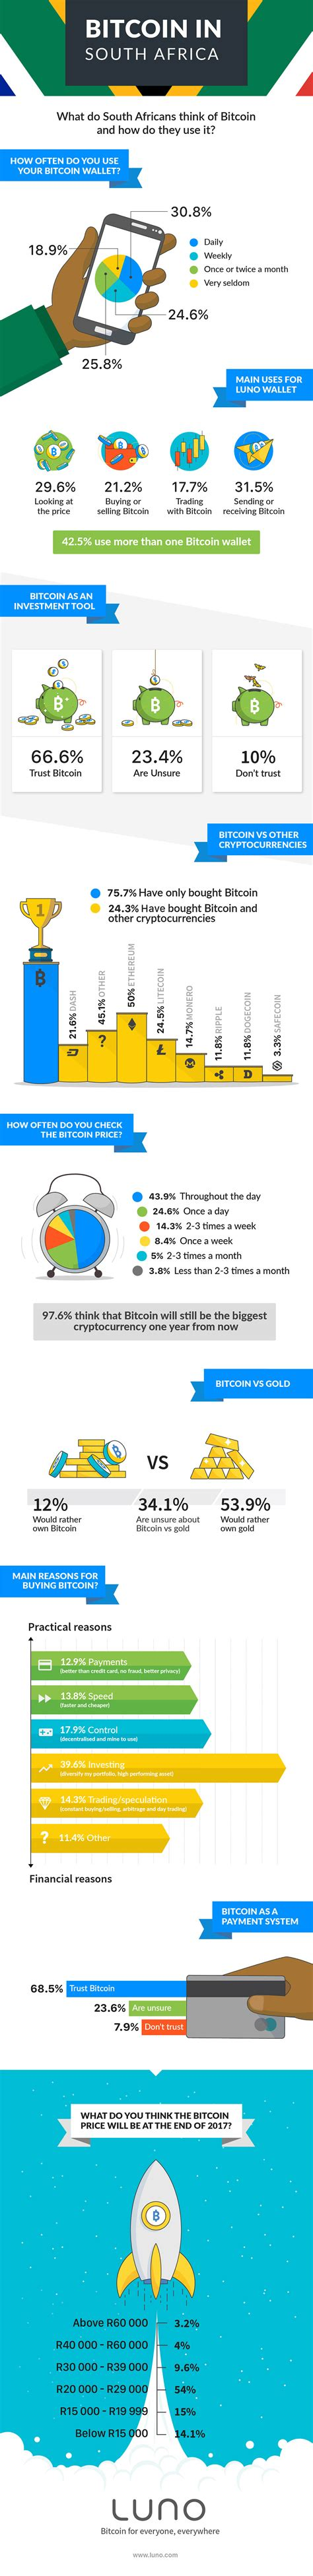 How does bitcoin work in south africa? Bitcoin in South Africa | The Luno blog | Luno